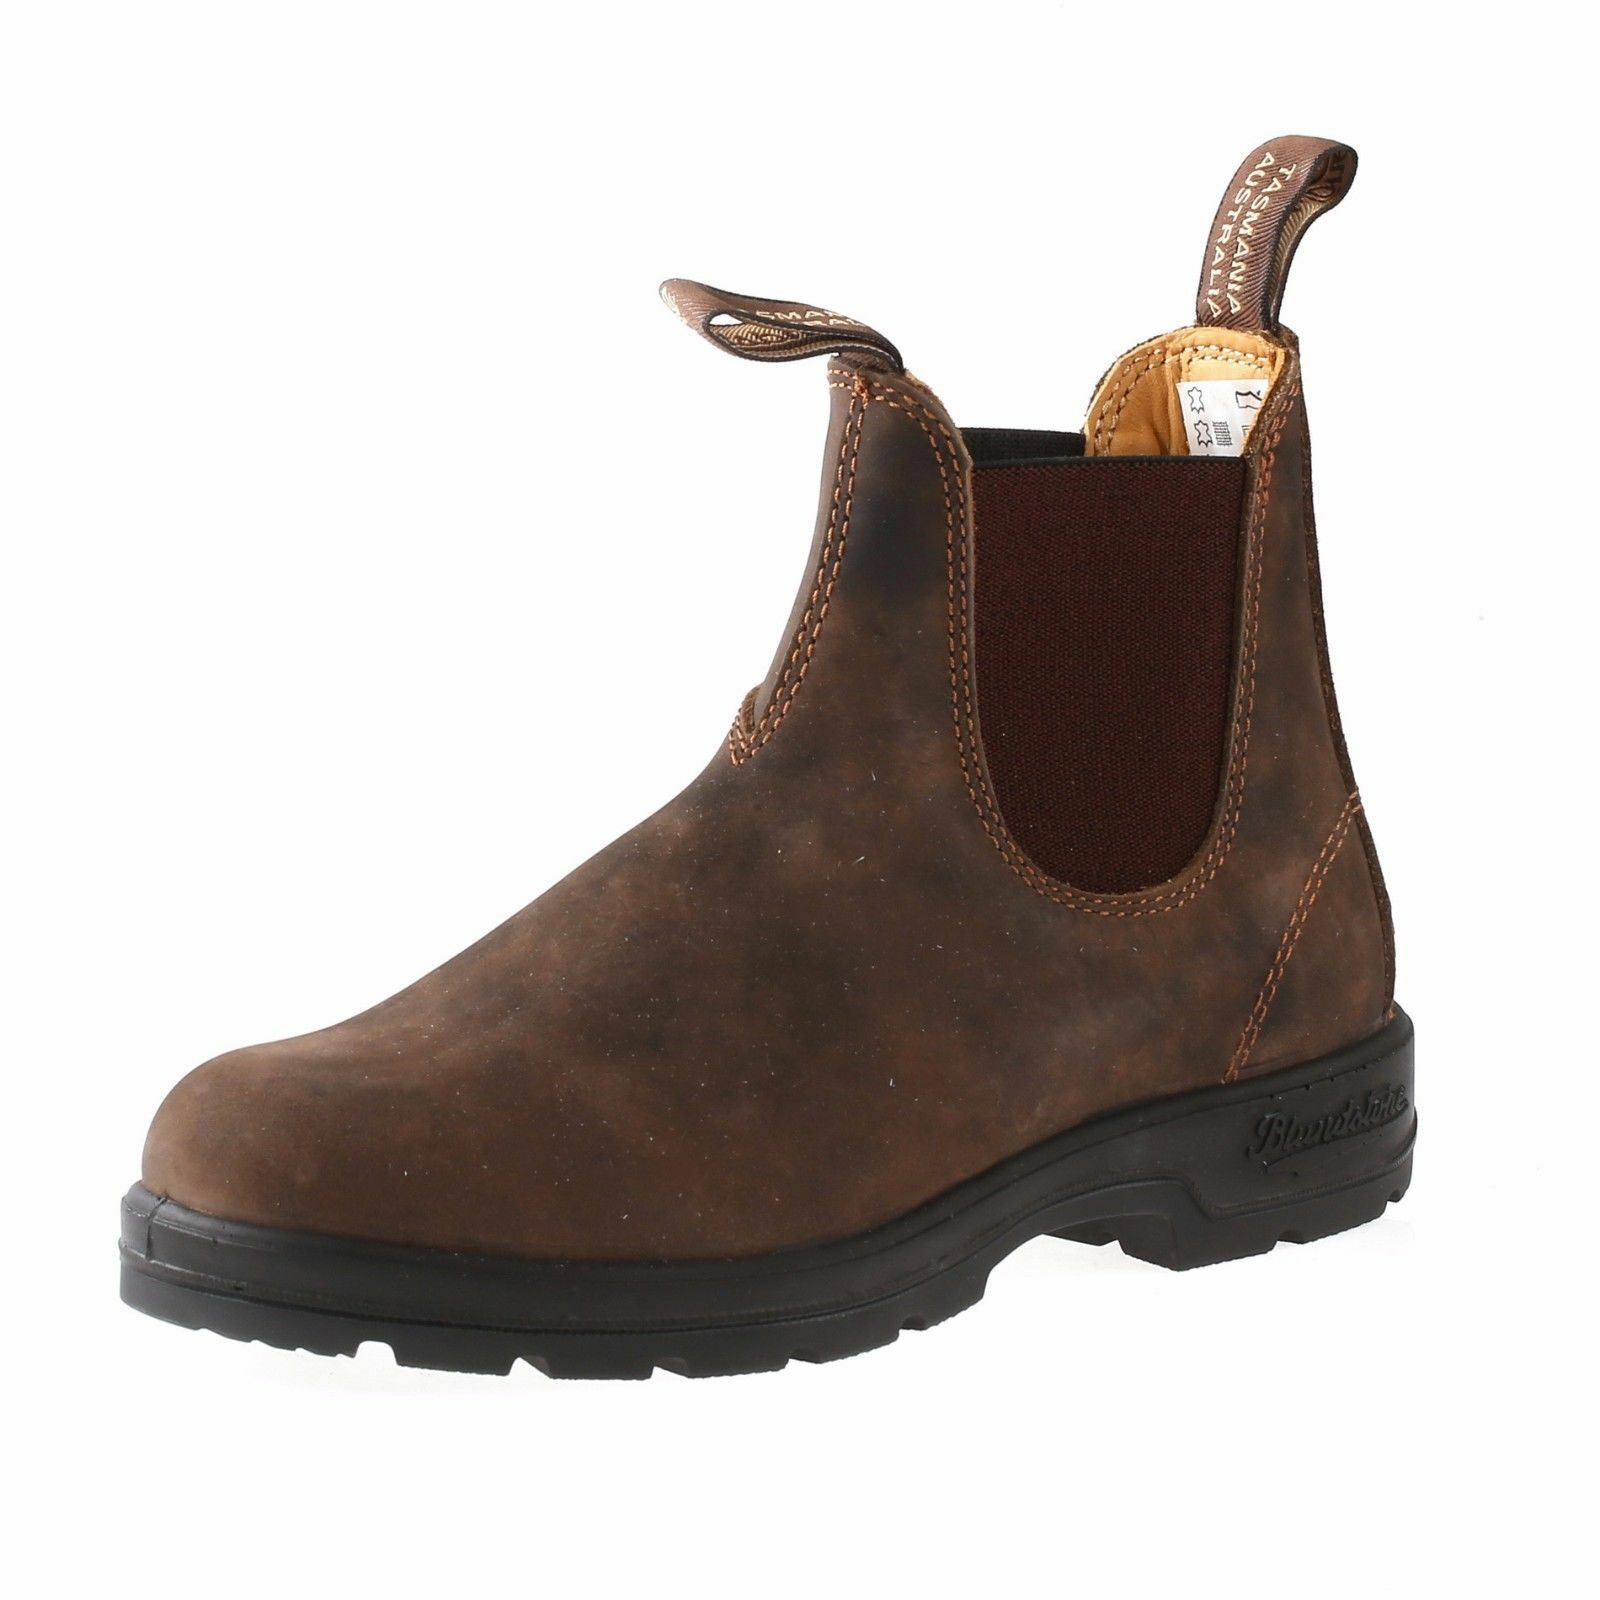 3f1962f2a5f Blundstone 585 Mens Rustic Brown Leather Classic Dealer Chelsea BOOTS US 9